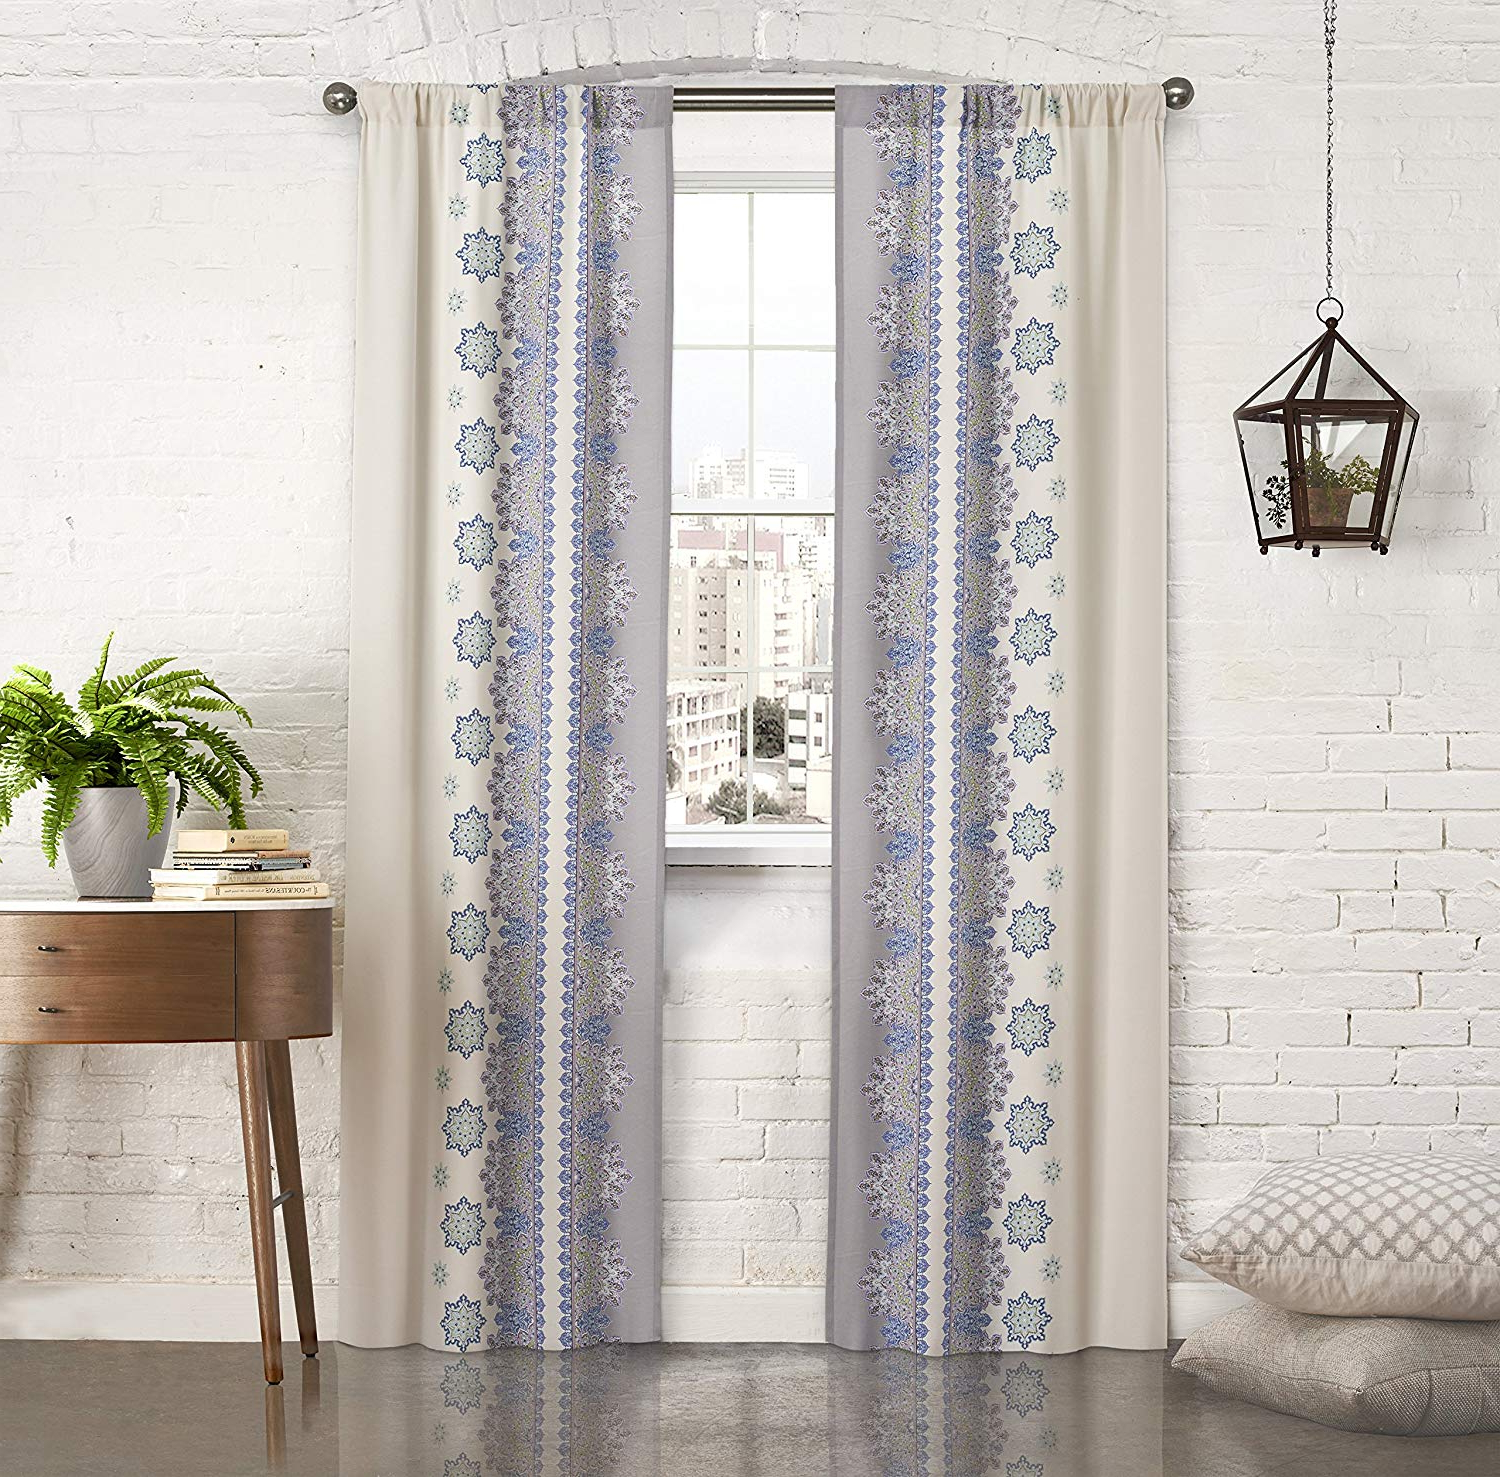 """Pairs To Go Curtains For Bedroom – Mantra 56"""" X 84"""" Decorative Double Panel  Rod Pocket Window Treatment Privacy Curtain Pair For Living Room, Blue For Preferred Curtain Panel Pairs (View 14 of 20)"""